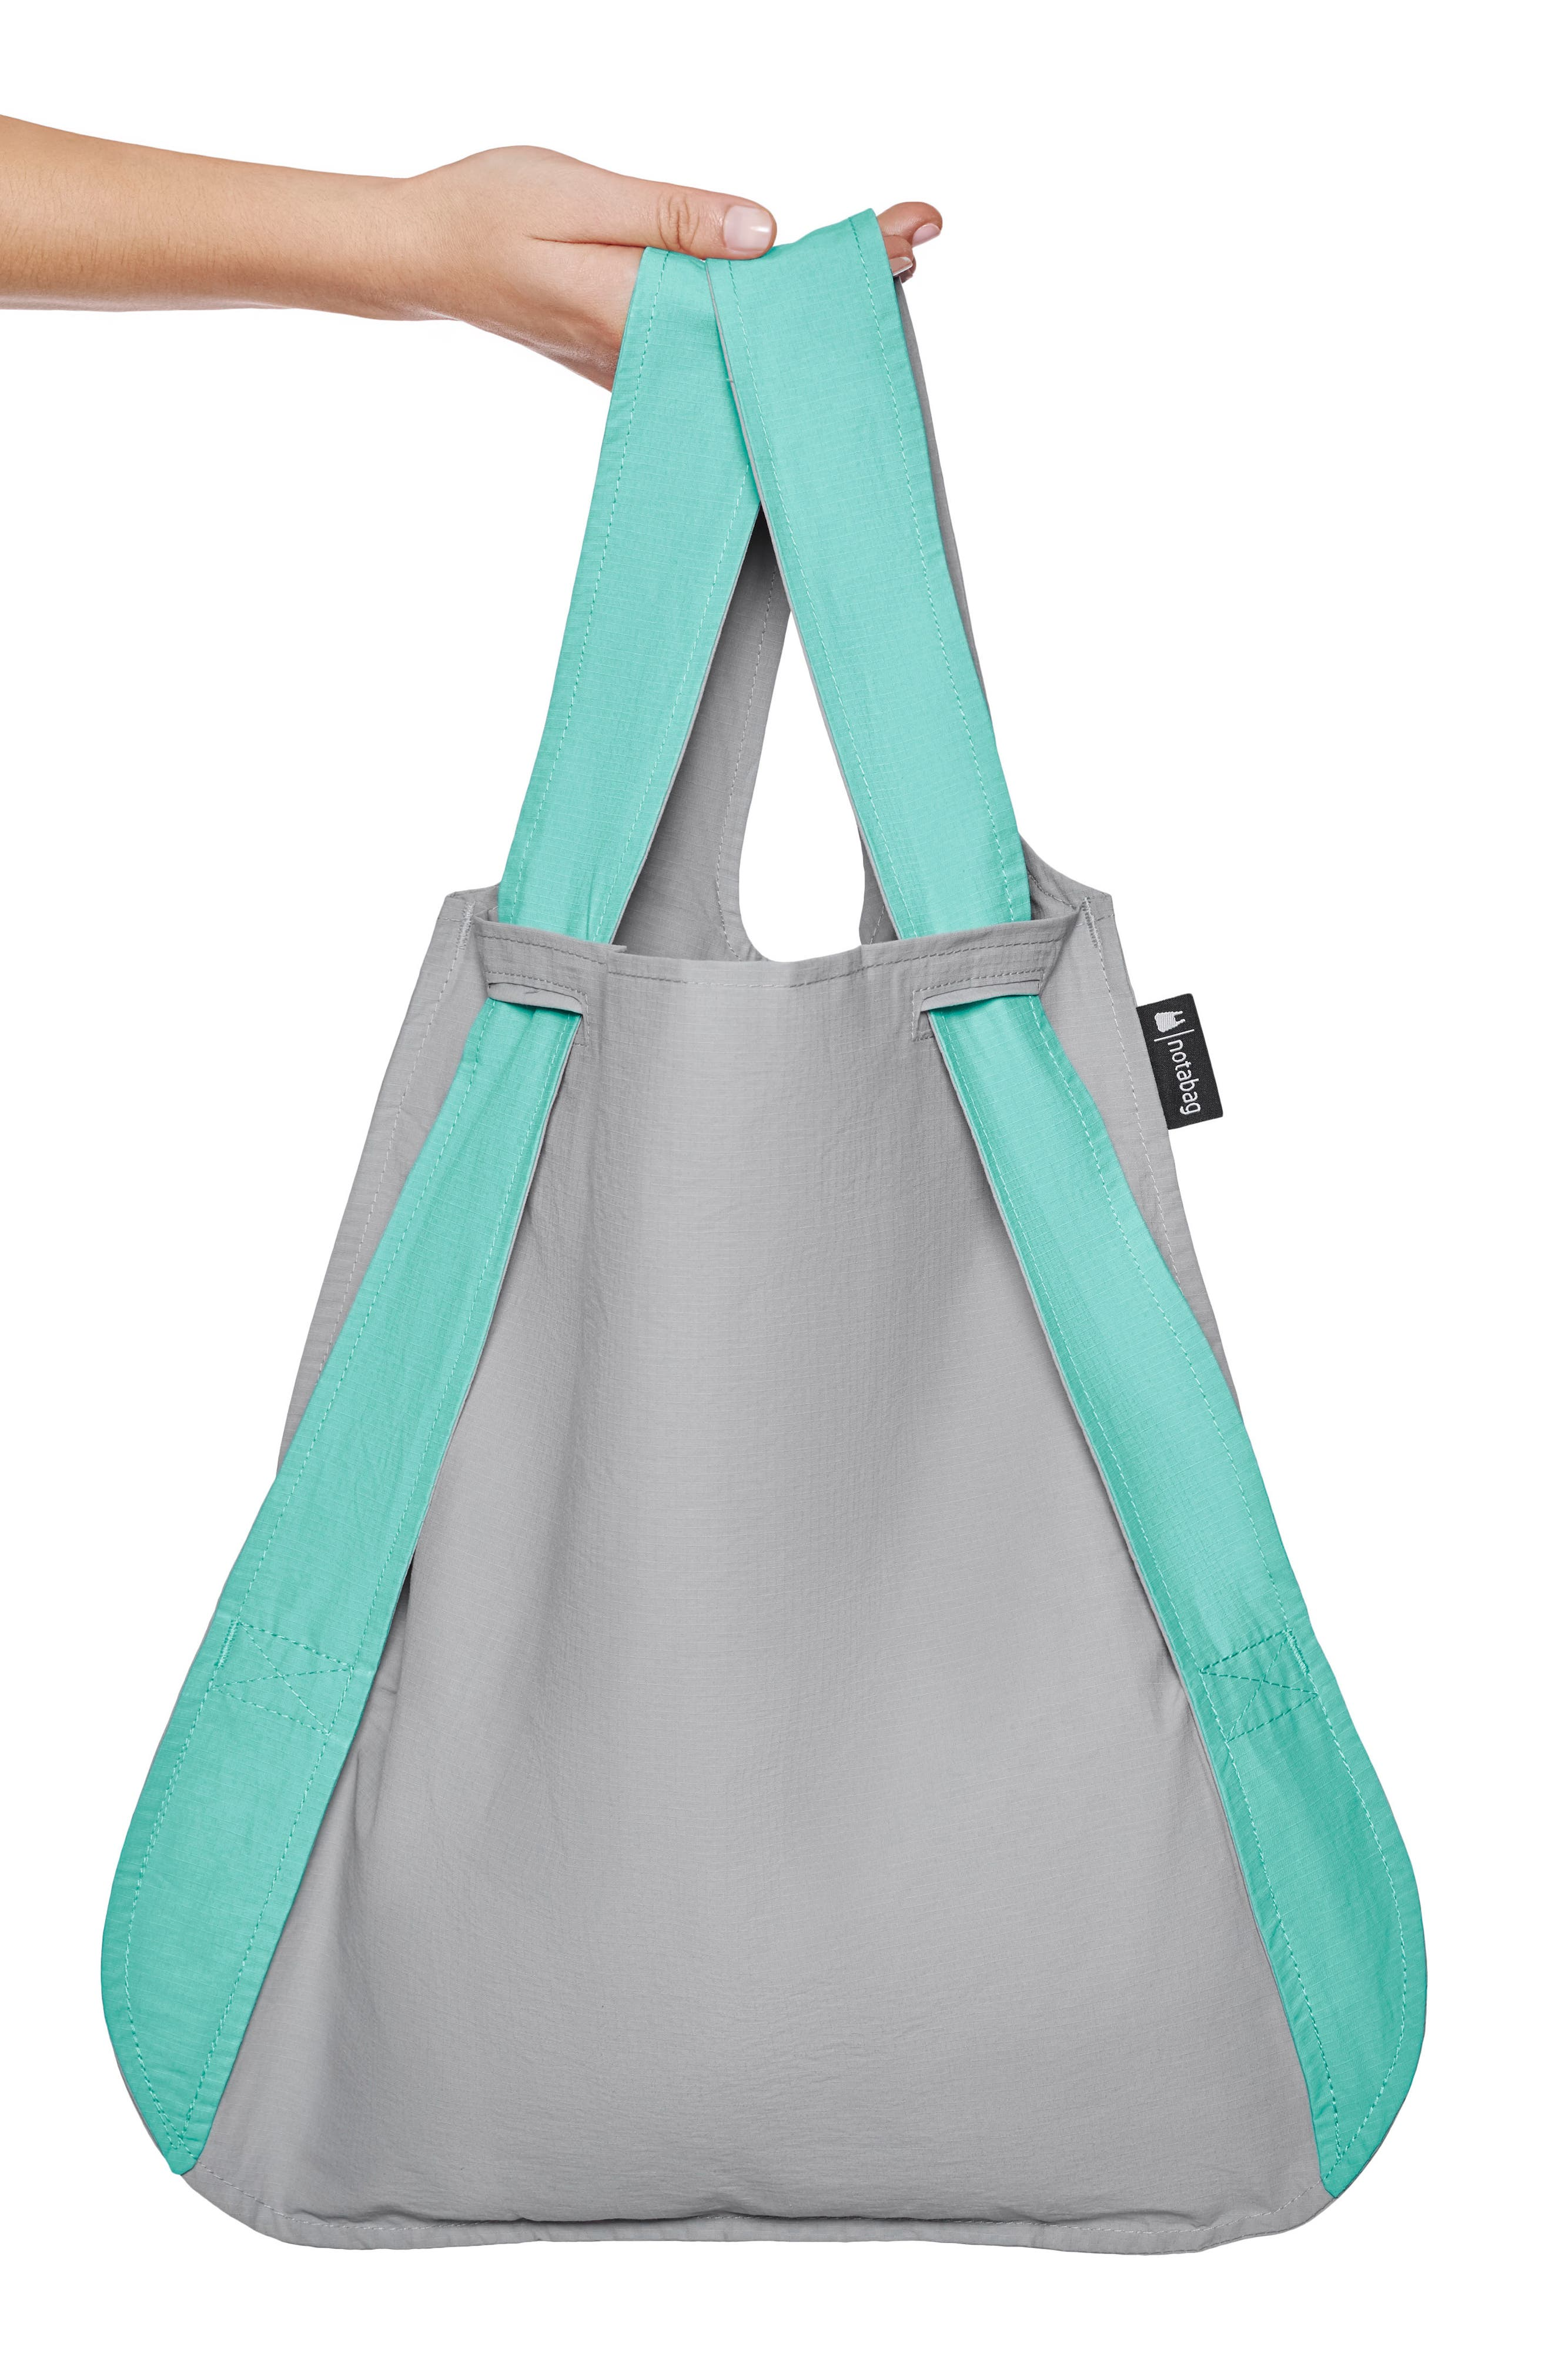 NOTABAG,                             Convertible Tote Backpack,                             Alternate thumbnail 3, color,                             MINT/ GREY